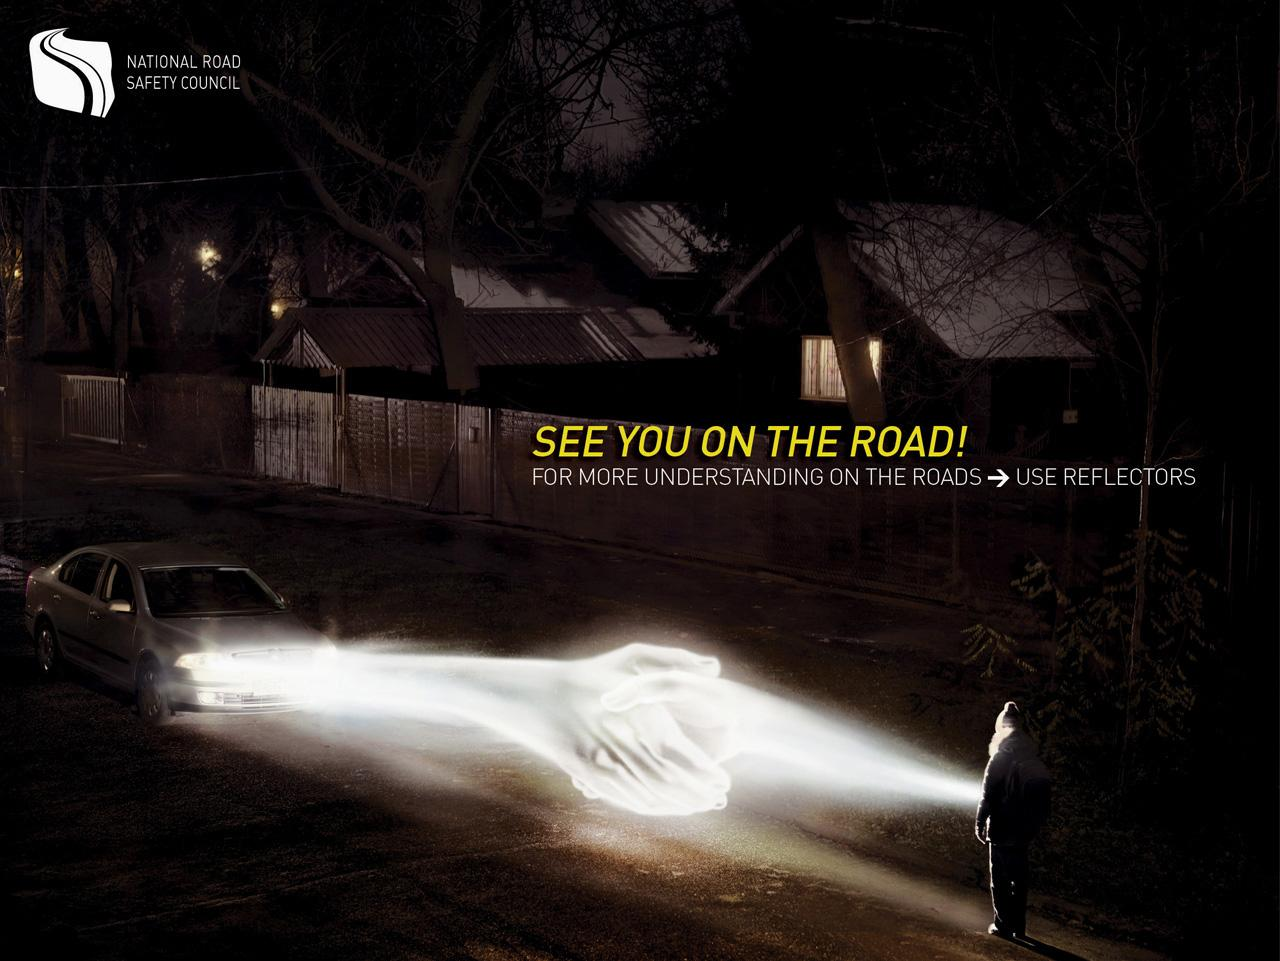 The Polish National Road Safety Council Print Ad -  See you on the road, 2